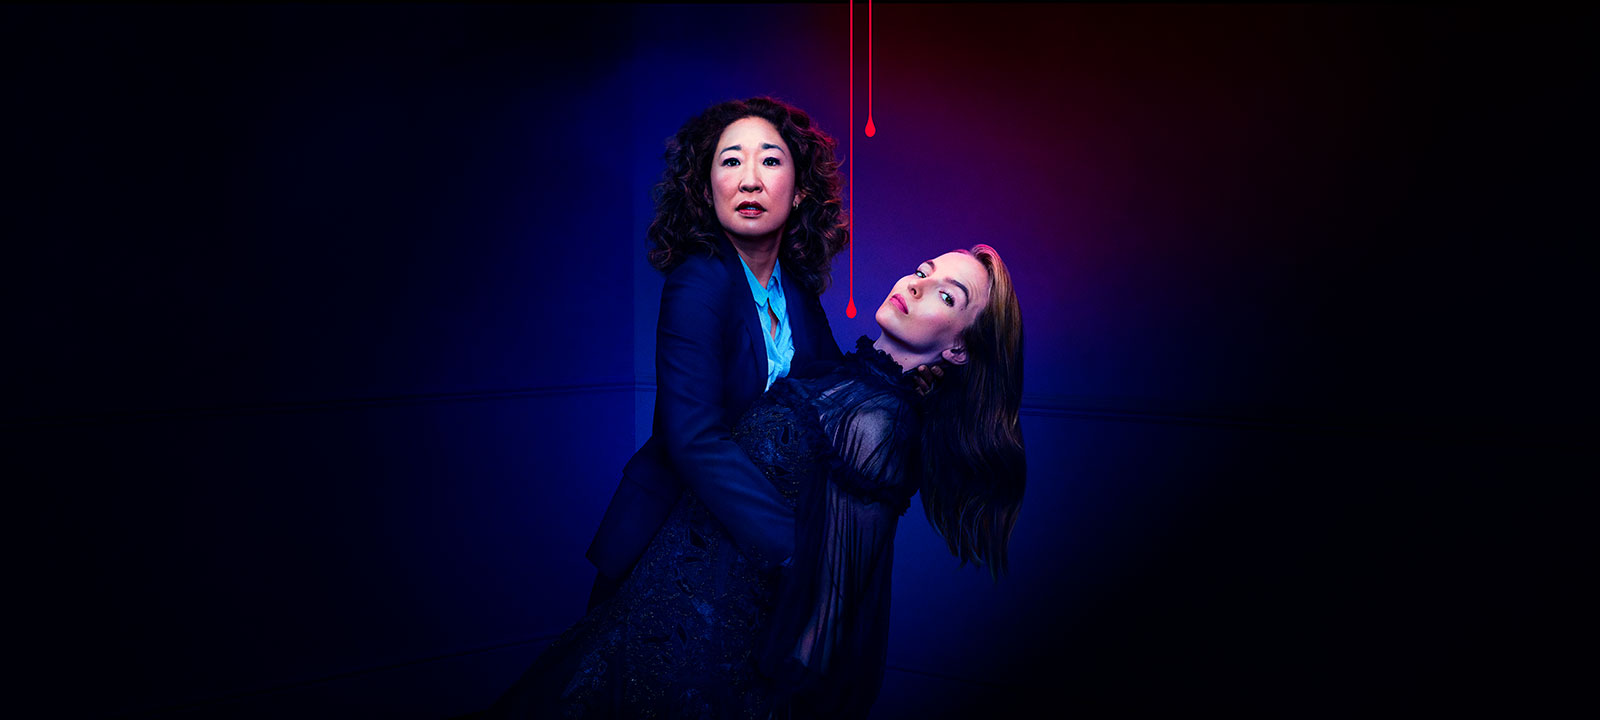 killing-eve-S2-key-art-v1-800×600